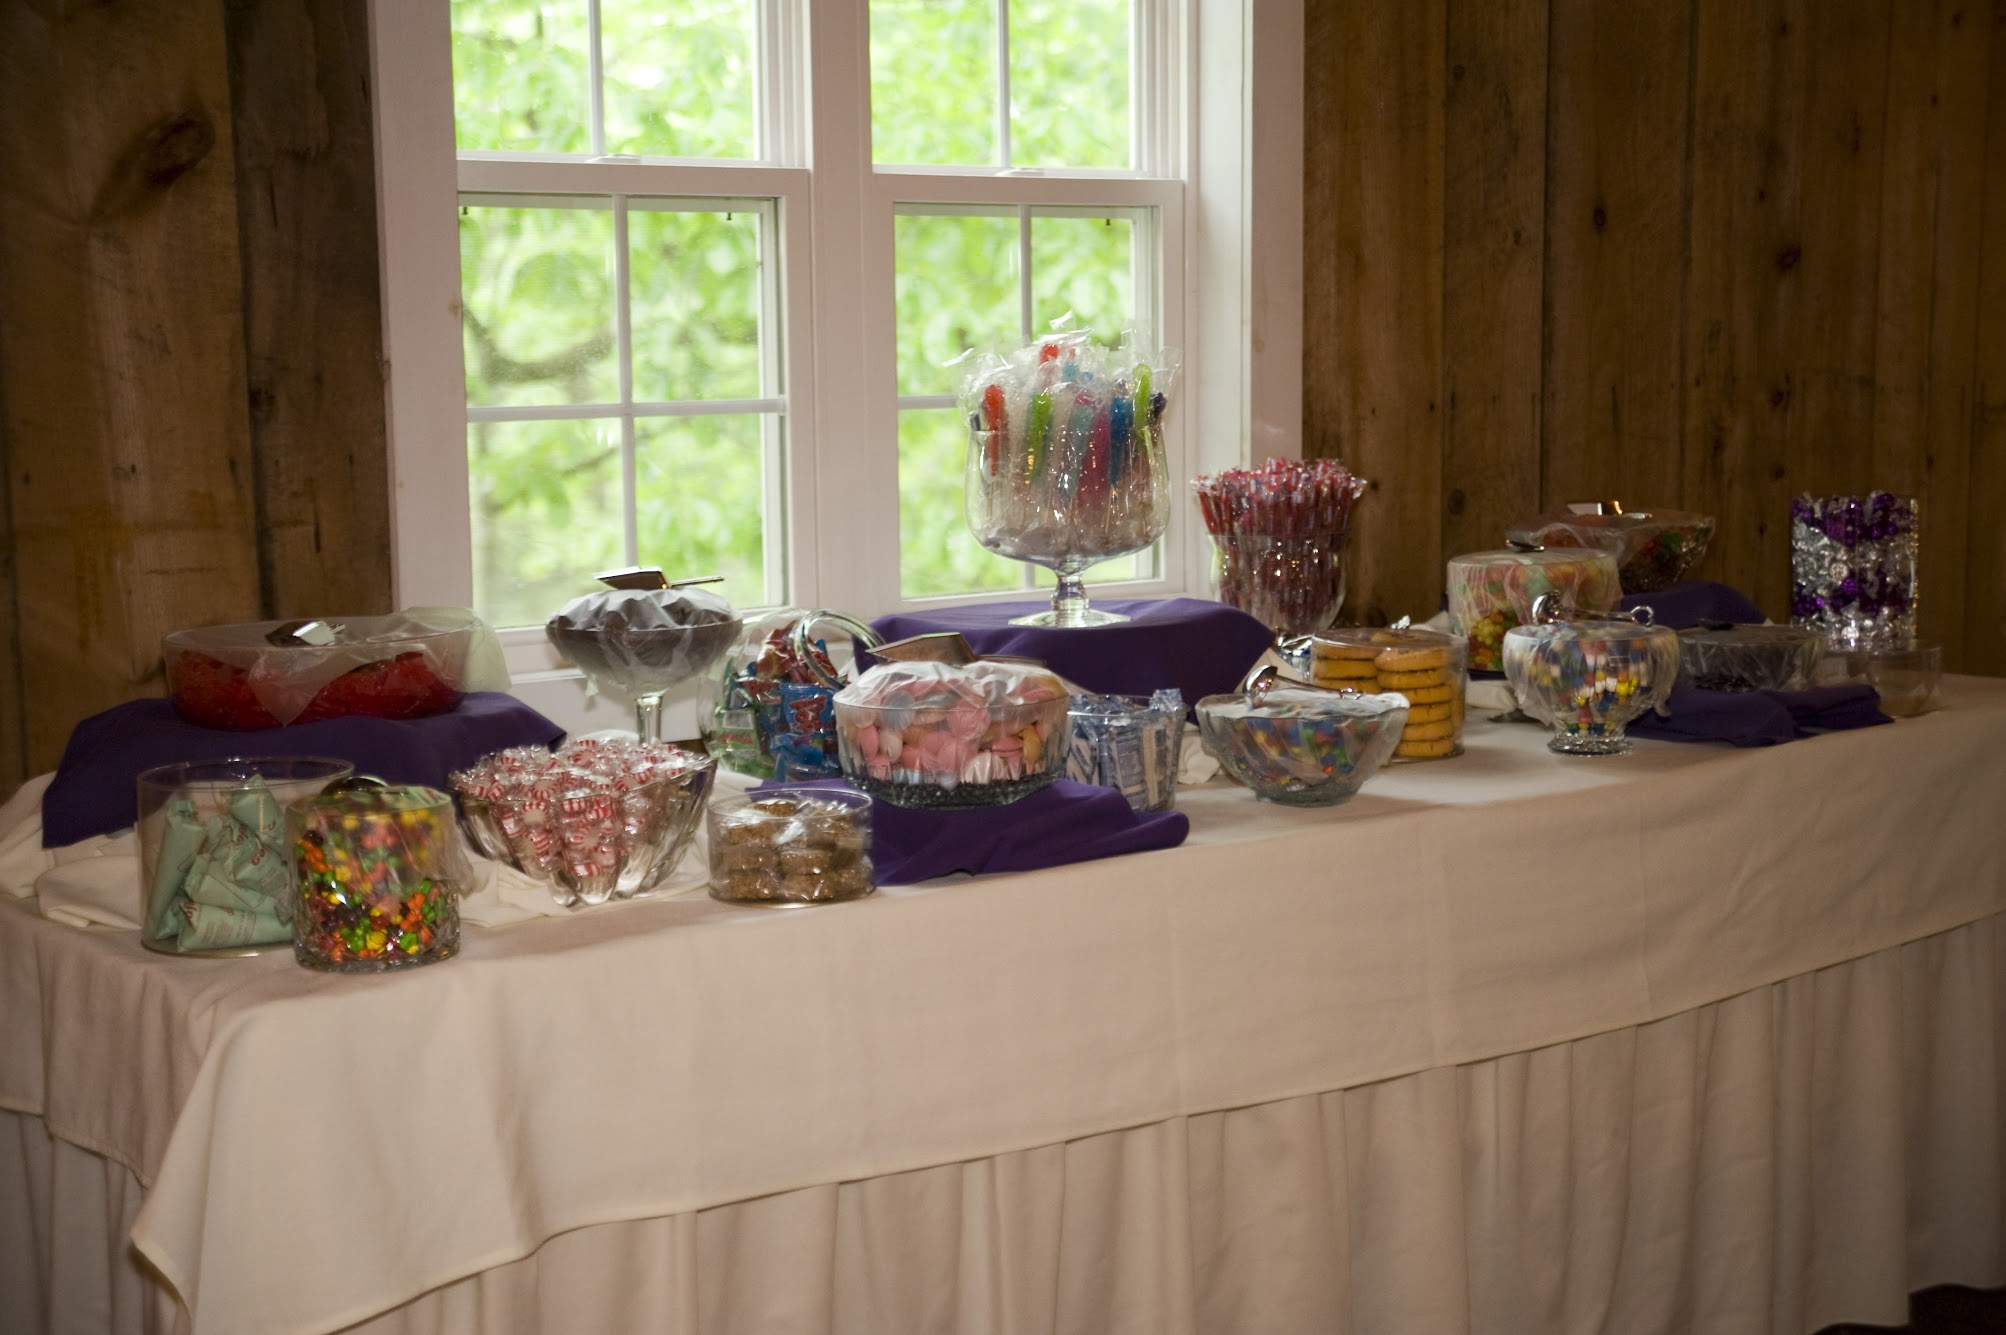 Table with candy on it